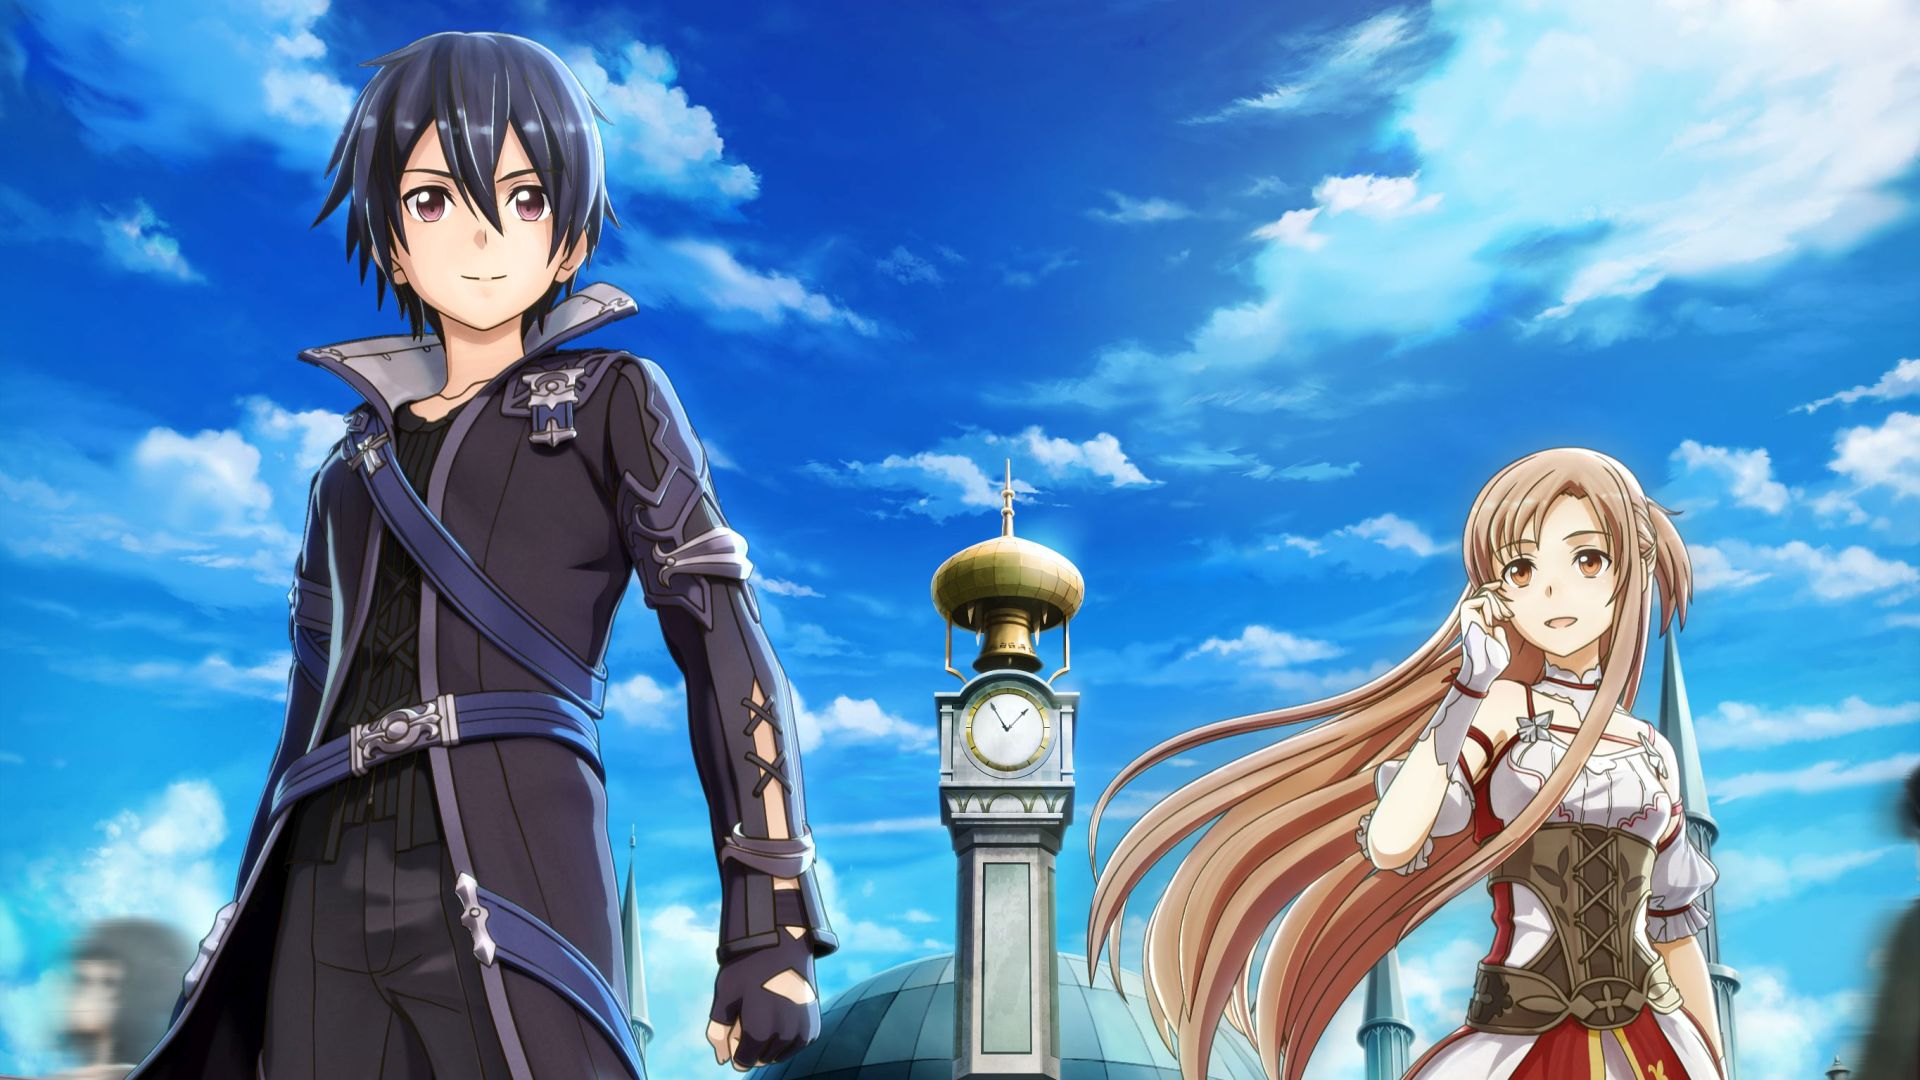 Sword art online hollow realization photo gallery for Online art galleries reviews